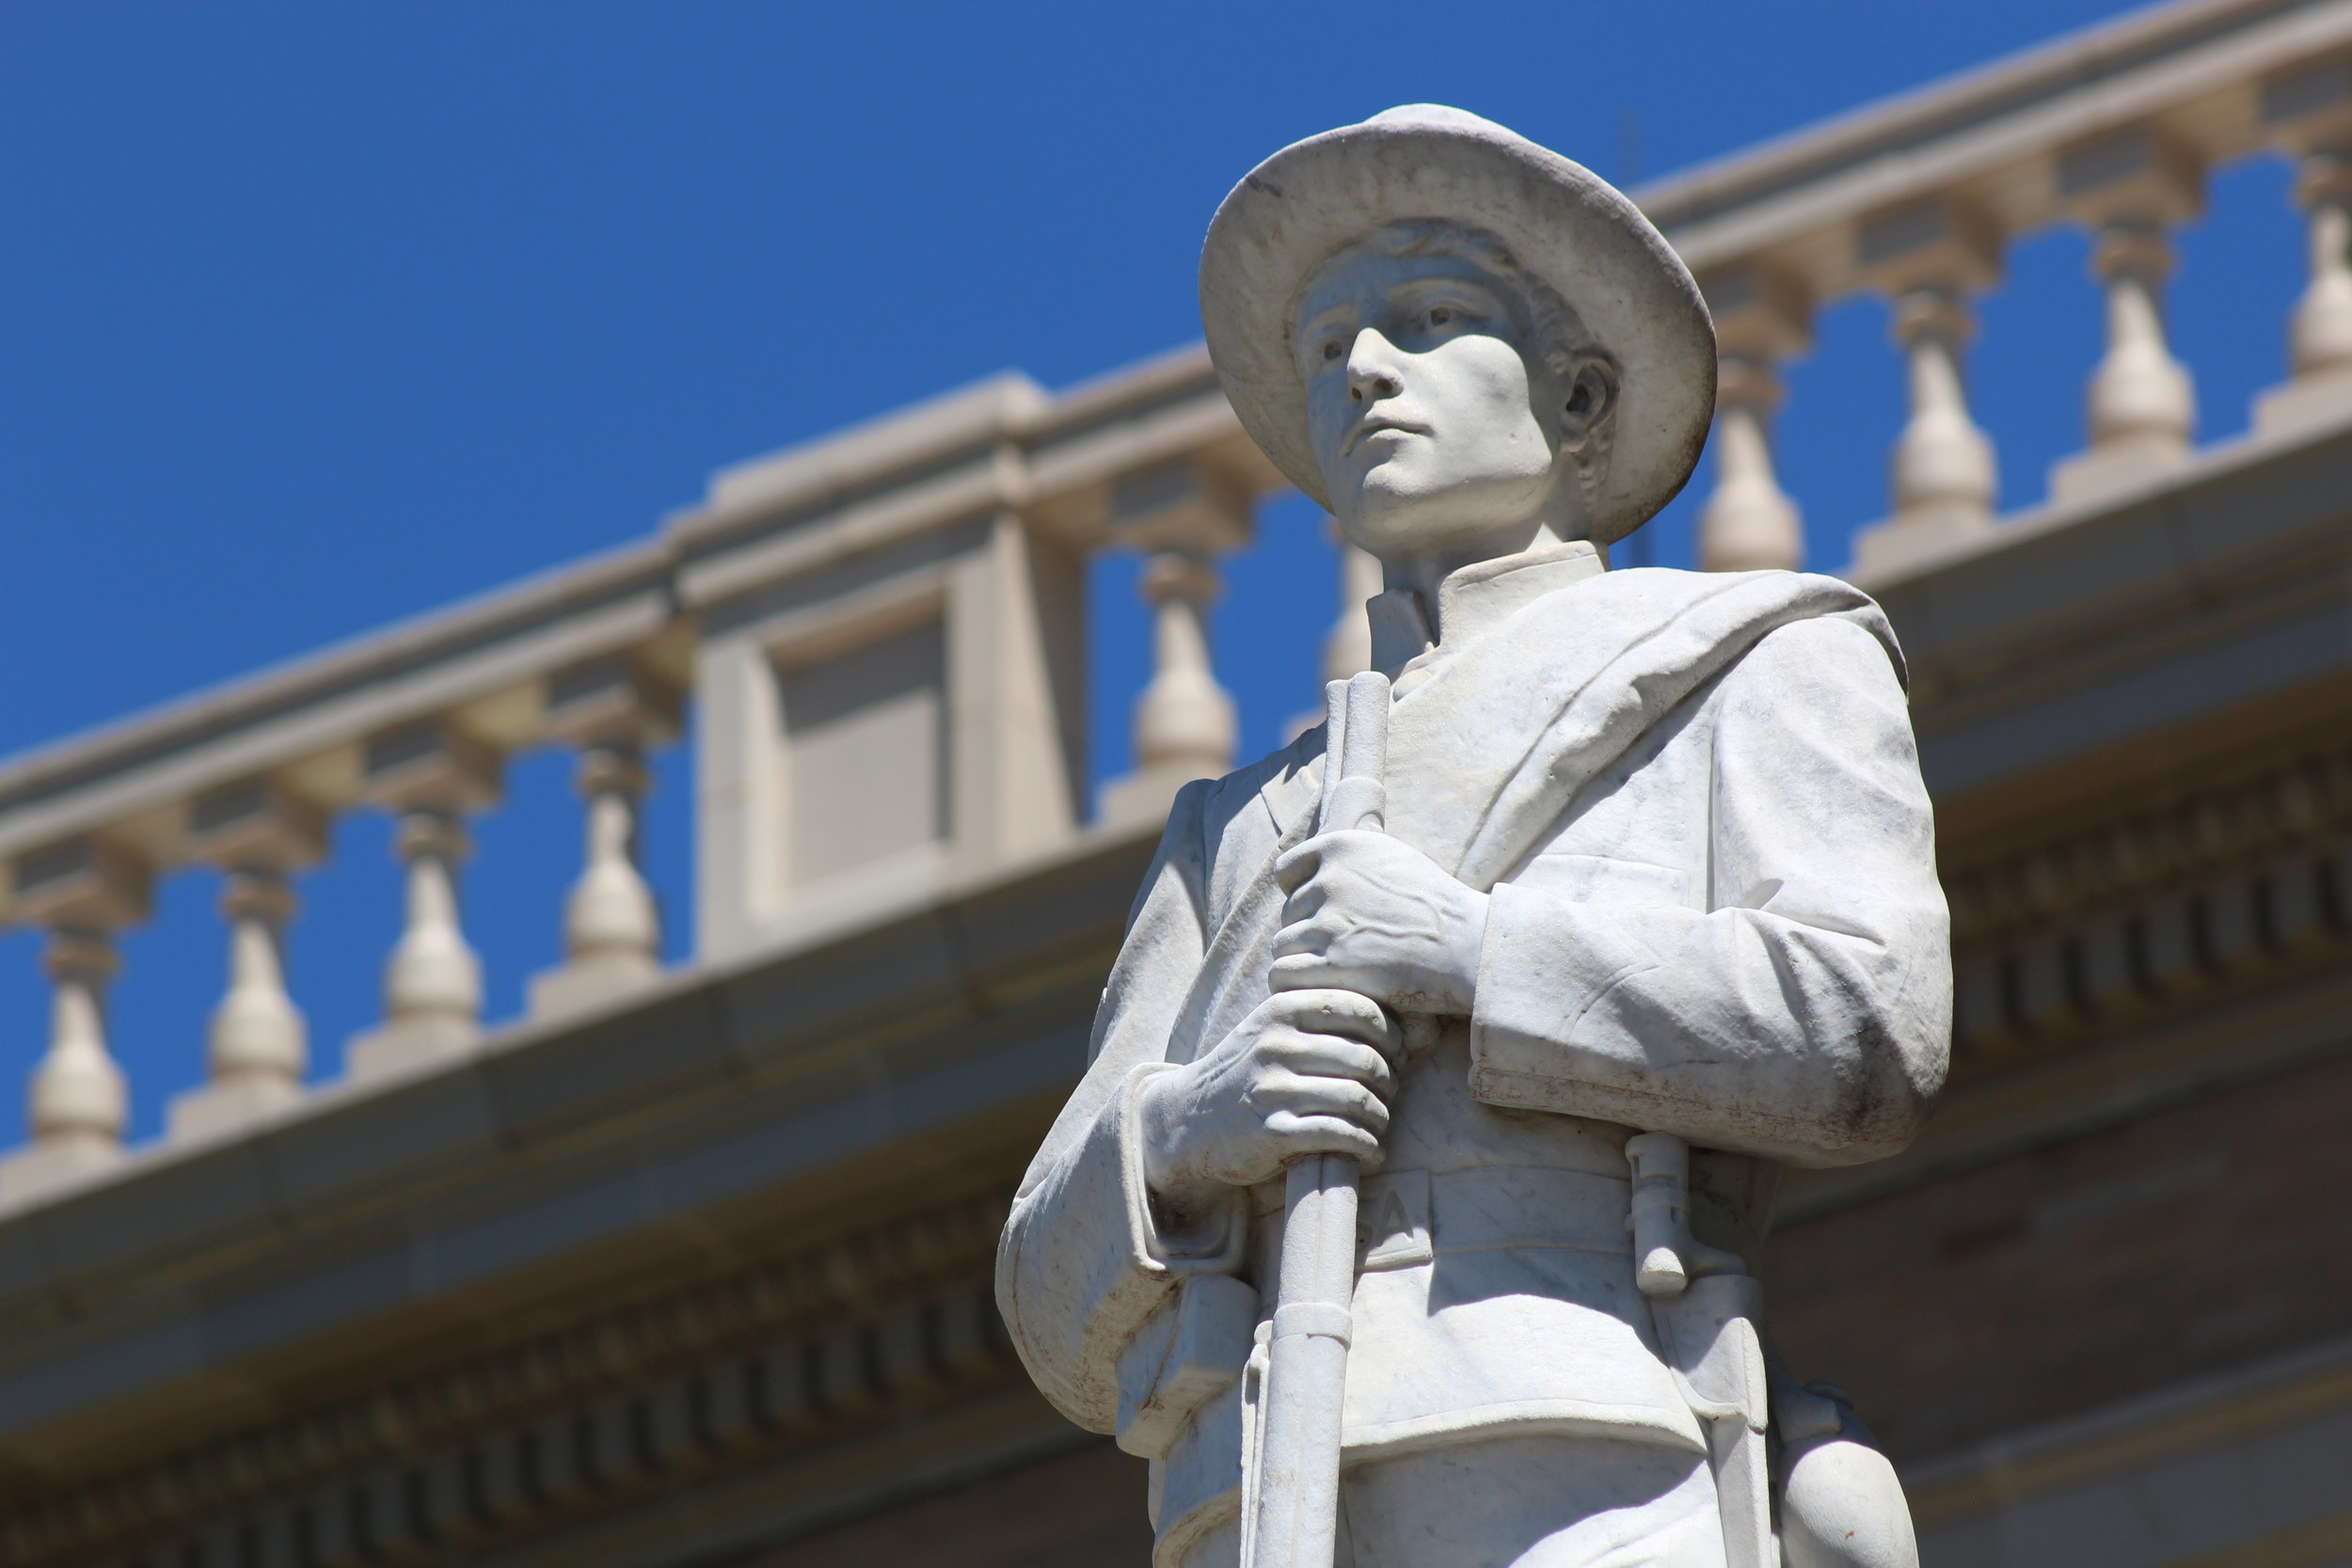 While Confederate statues are being removed and taken down throughout the United States, a petition calling for a plaque with historical context to be added to a Confederate soldier monument is being circulated in Williamson County.